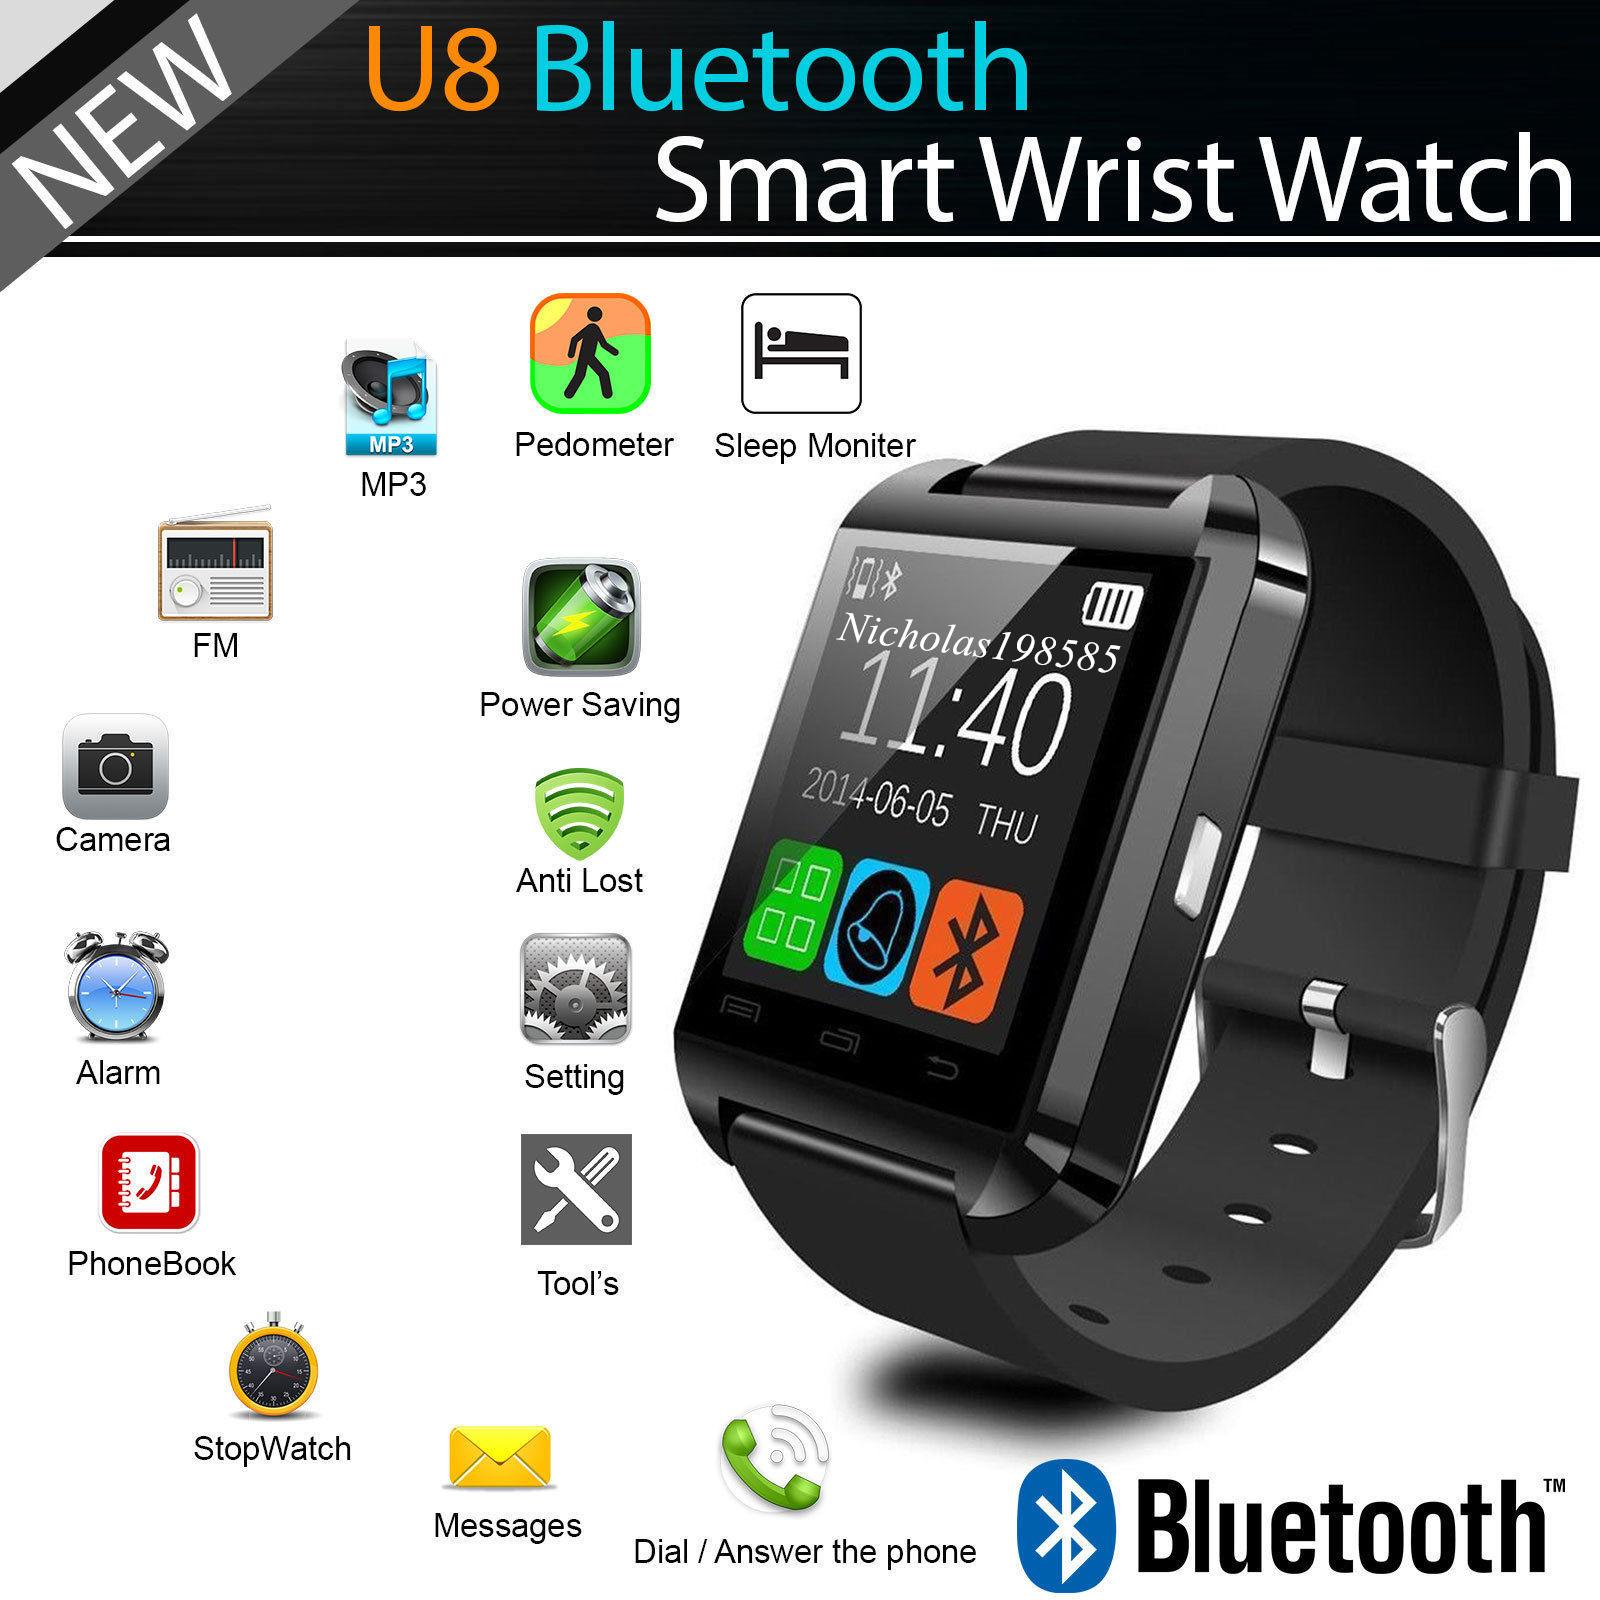 screen system bracelet monitoring smart watches touch iphone black csmarte phone amazon microsoft mobile nokia android stopwatch watch symbian dp google for com windows calculator pedometer